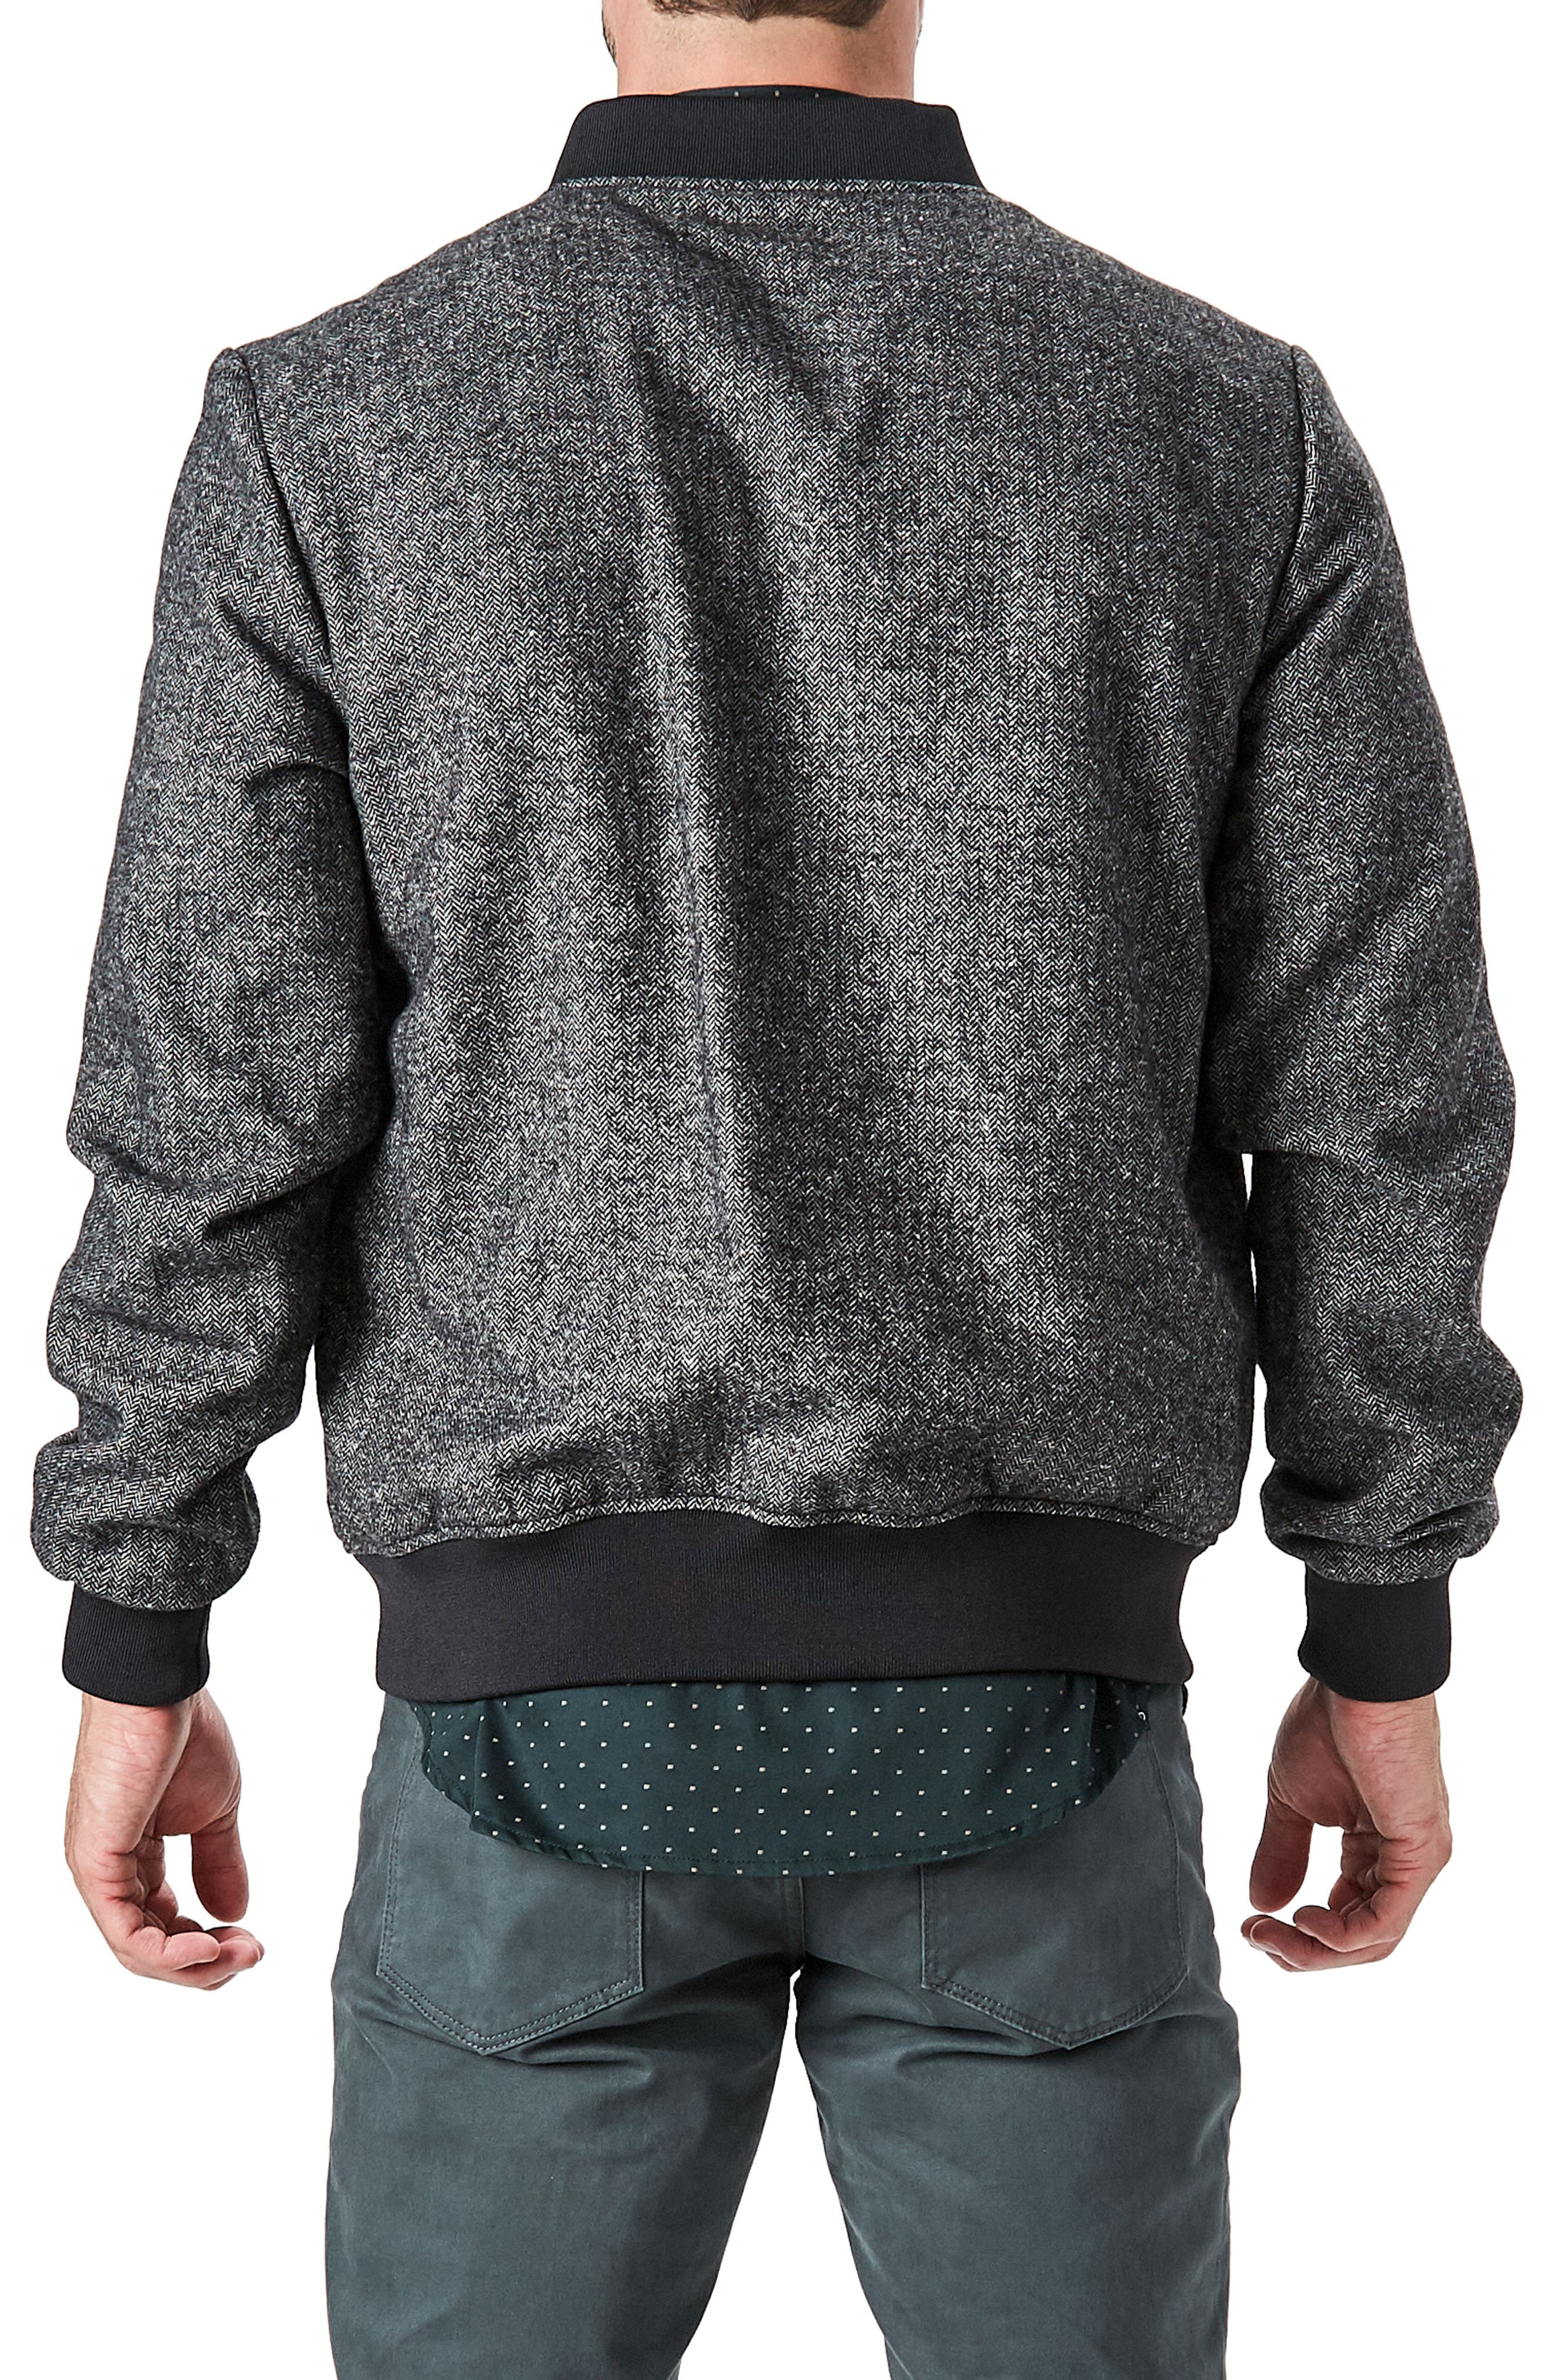 Aether Bomber Jacket,                             Alternate thumbnail 4, color,